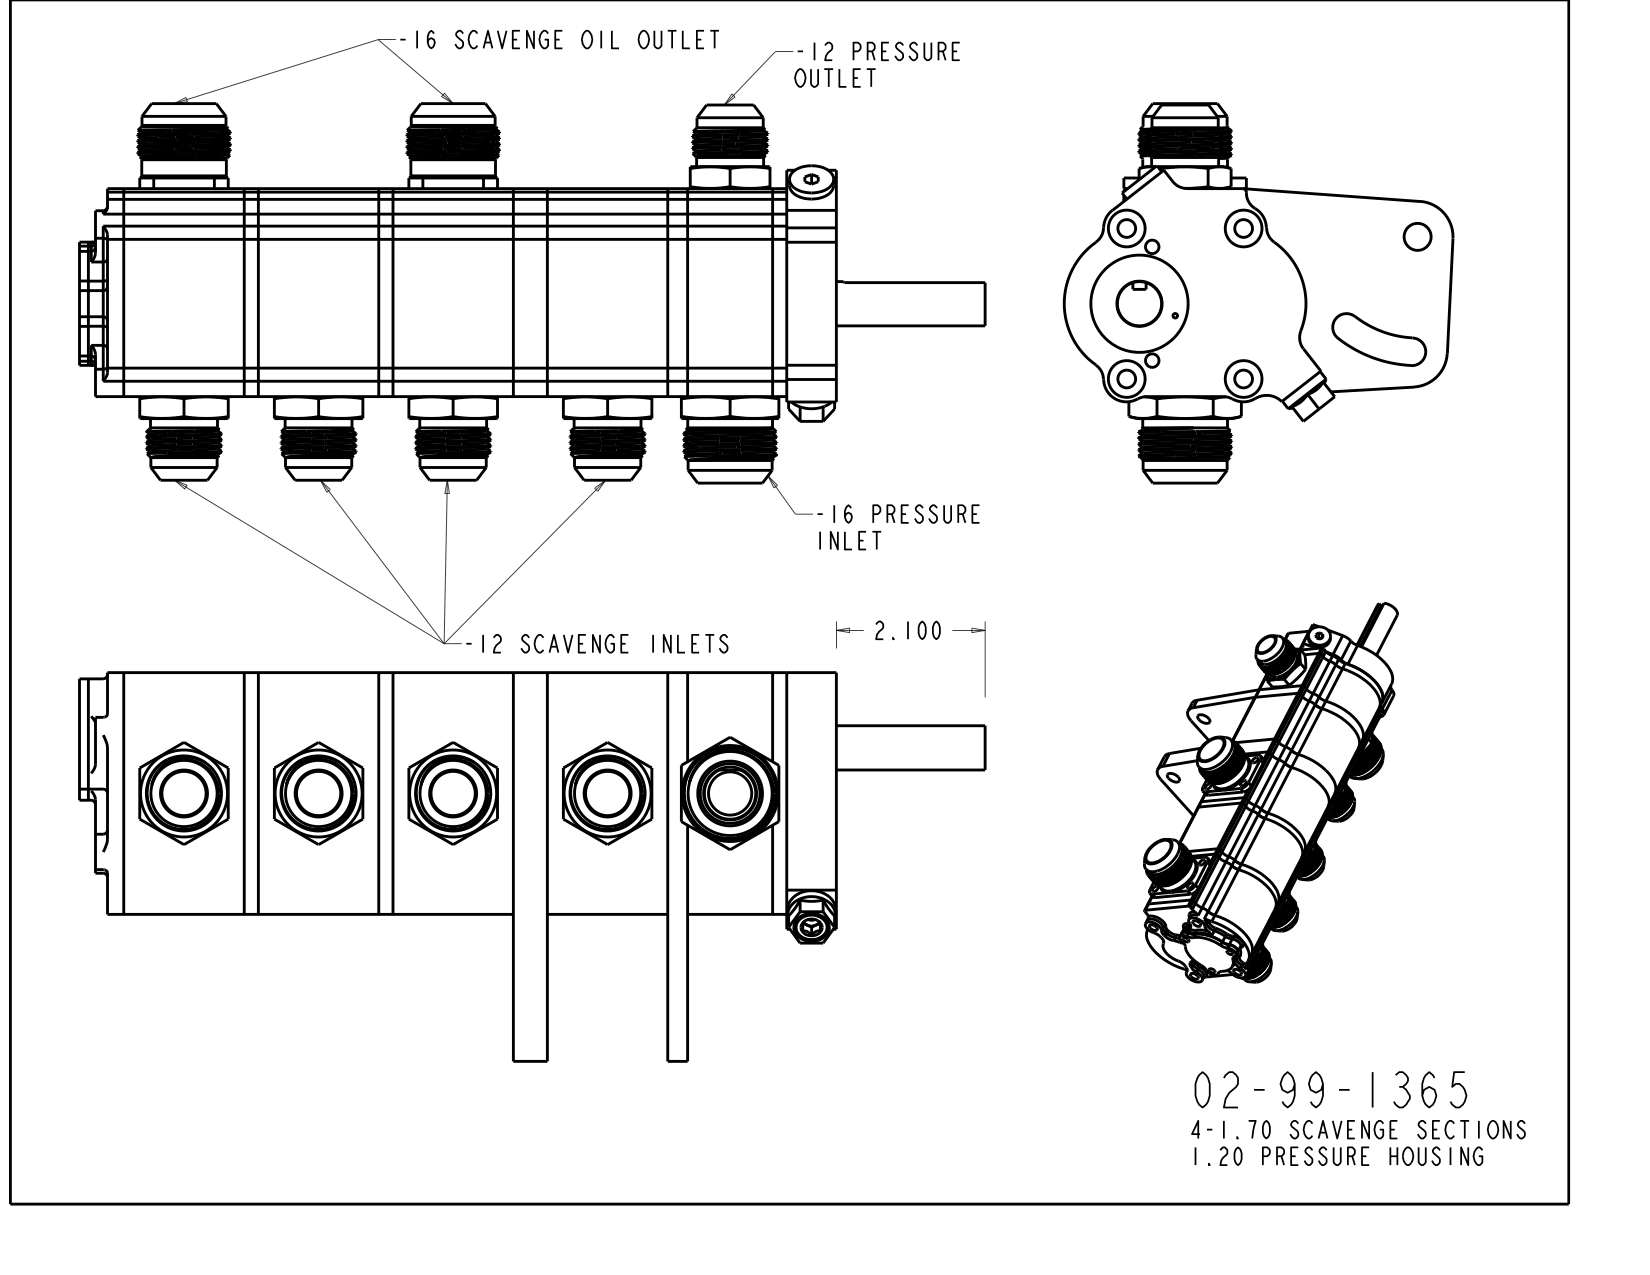 Bmw 323ci Transmission Parts Diagram. Bmw. Auto Wiring Diagram